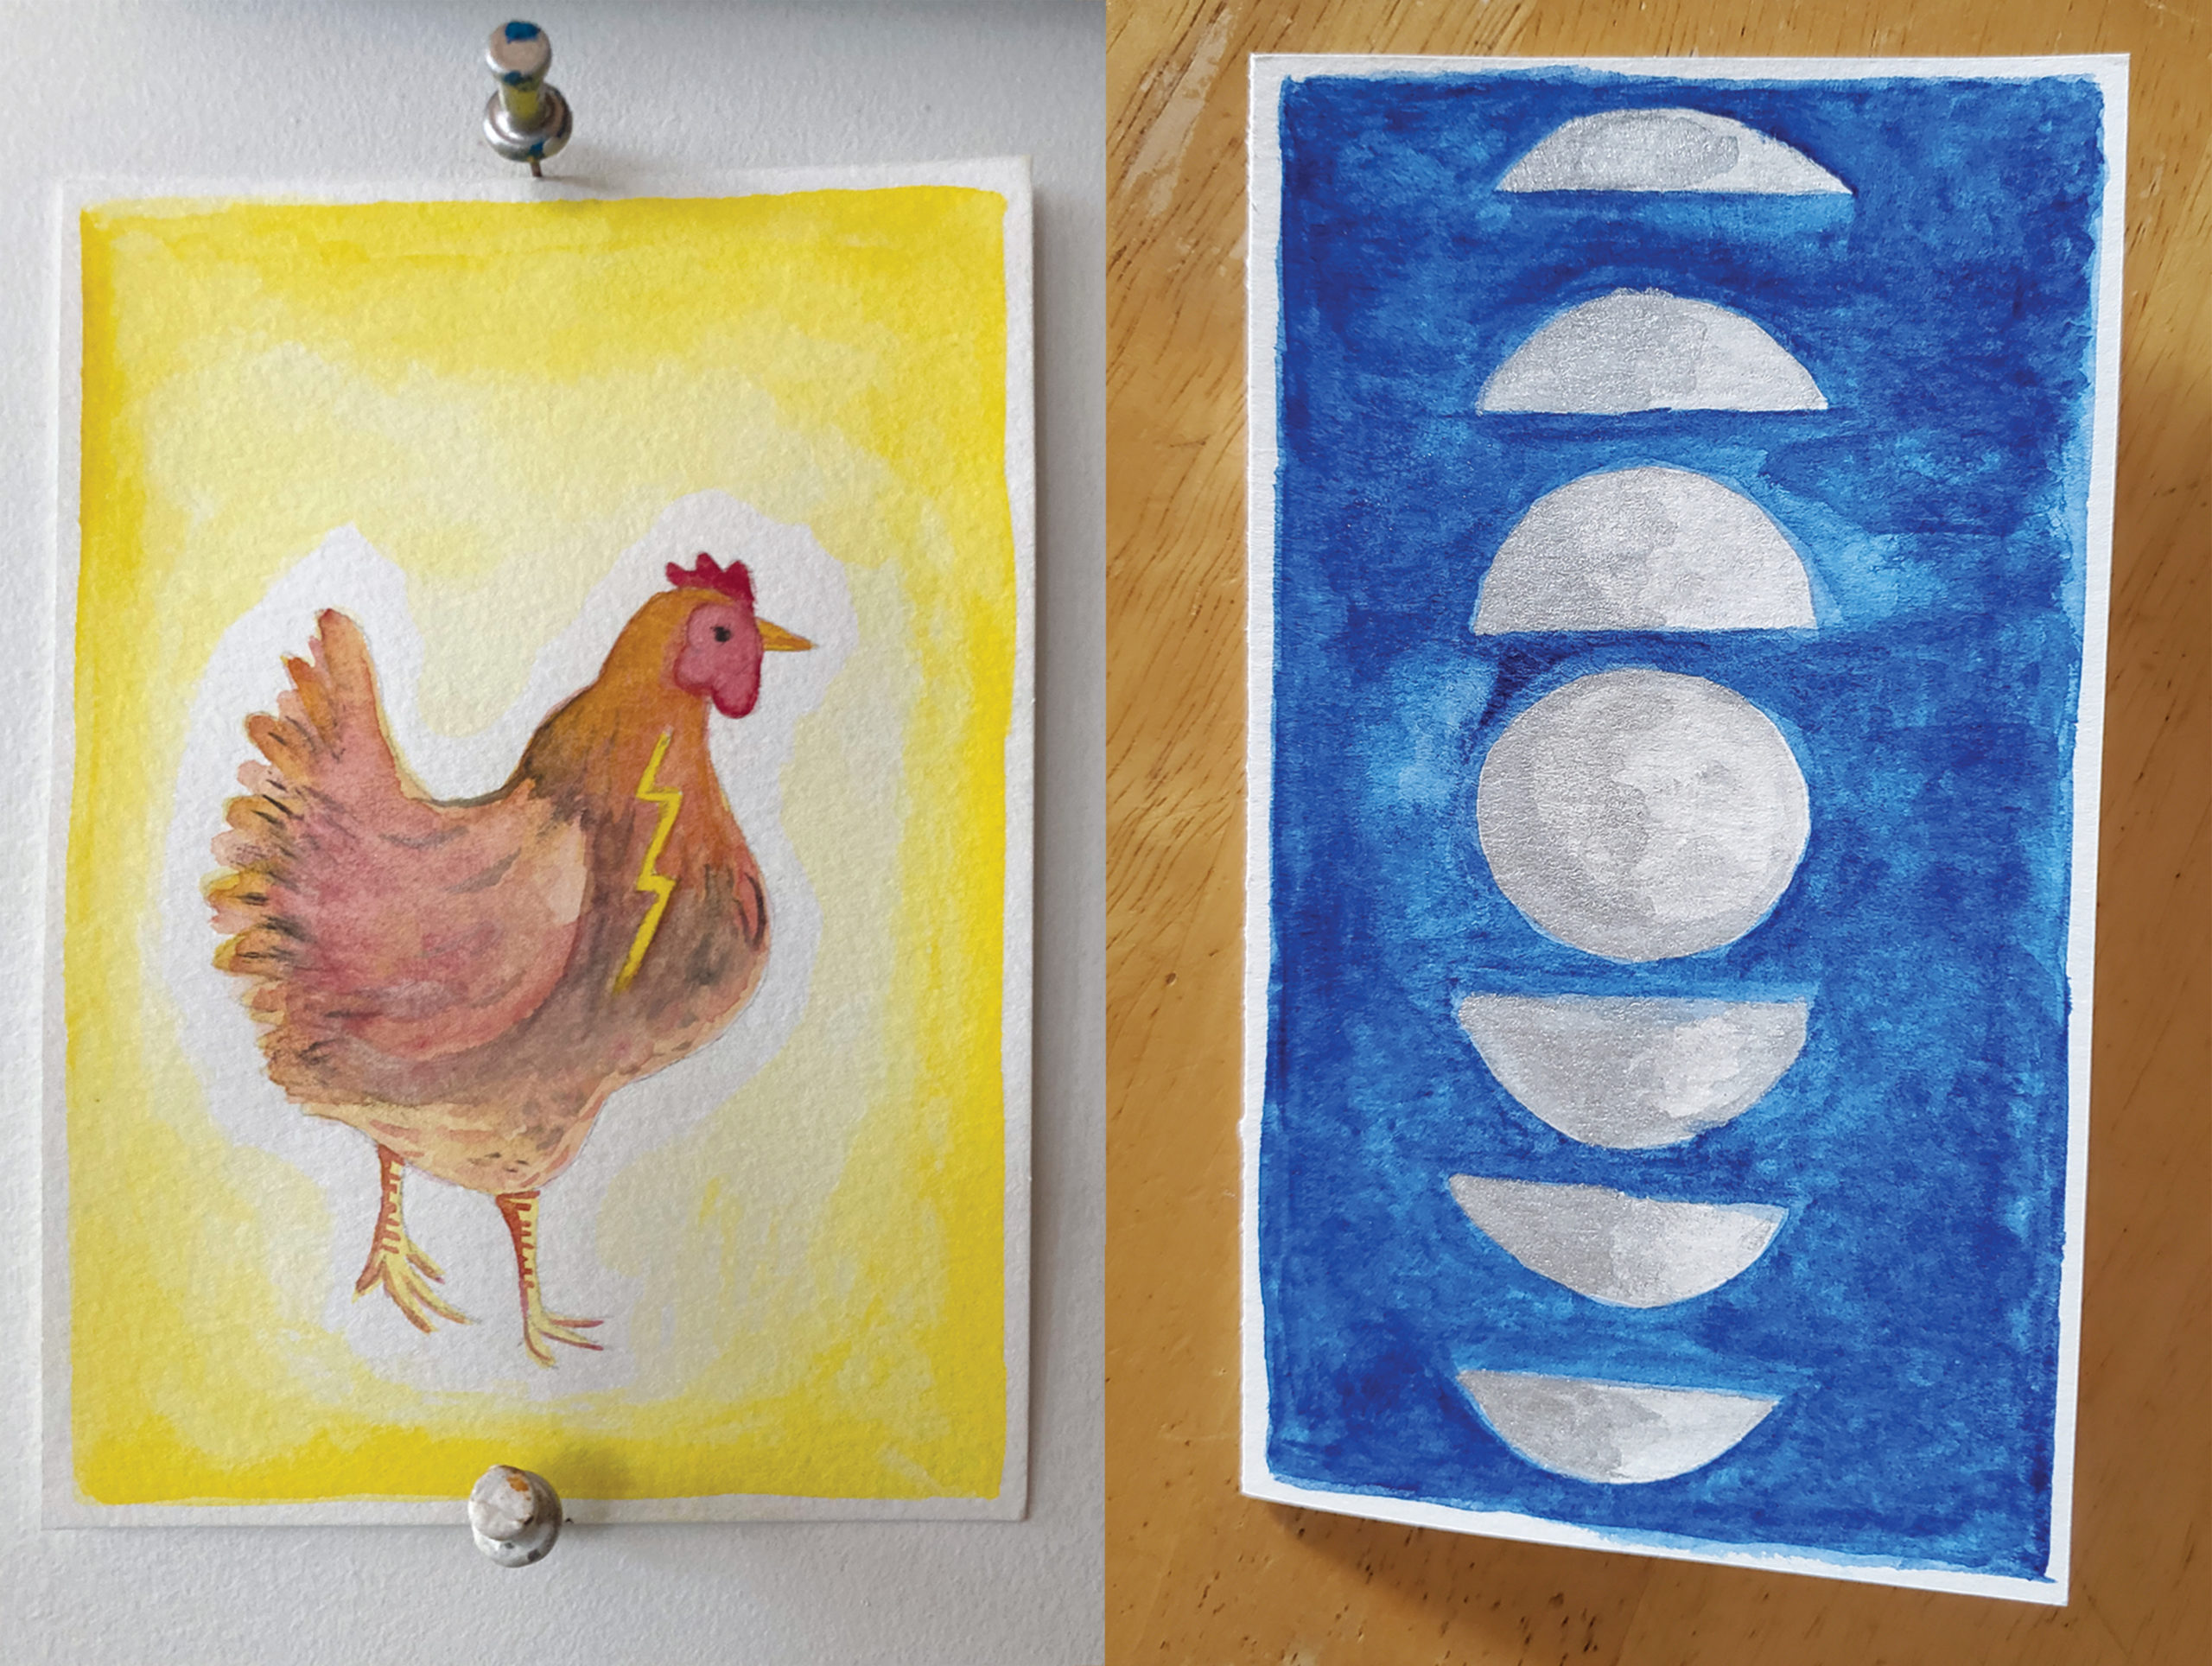 Composite photo of two cards sitting next to each other. The card on the left is a watercolor painting of a chicken; the card on the right is a watercolor rendering of the phases of the moon against a deep blue sky.